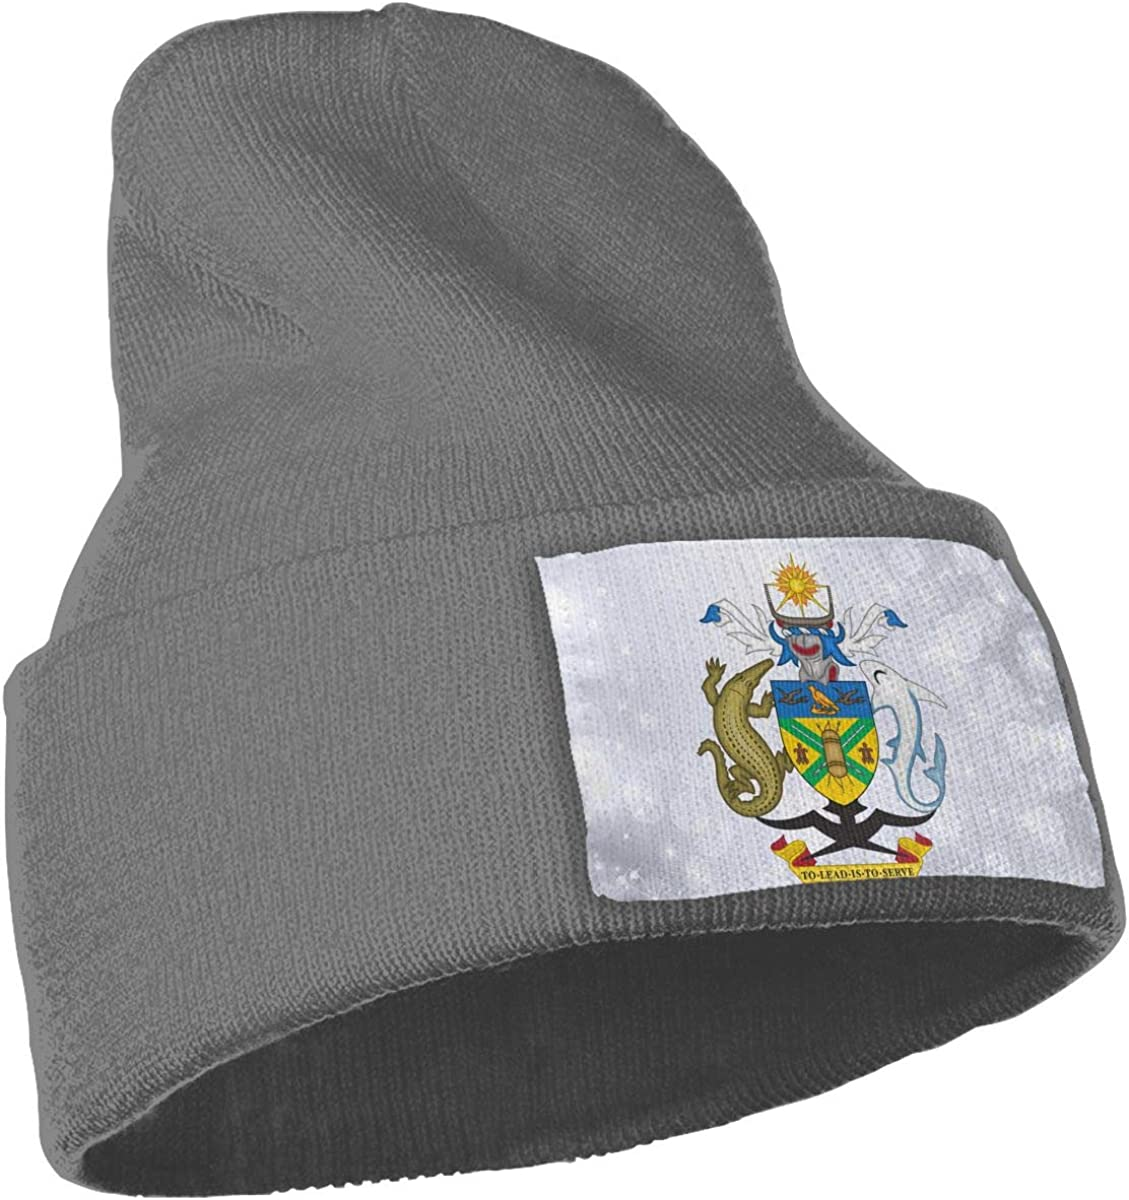 JimHappy Coat of Arms of The Solomon Islands Hat for Men and Women Winter Warm Hats Knit Slouchy Thick Skull Cap